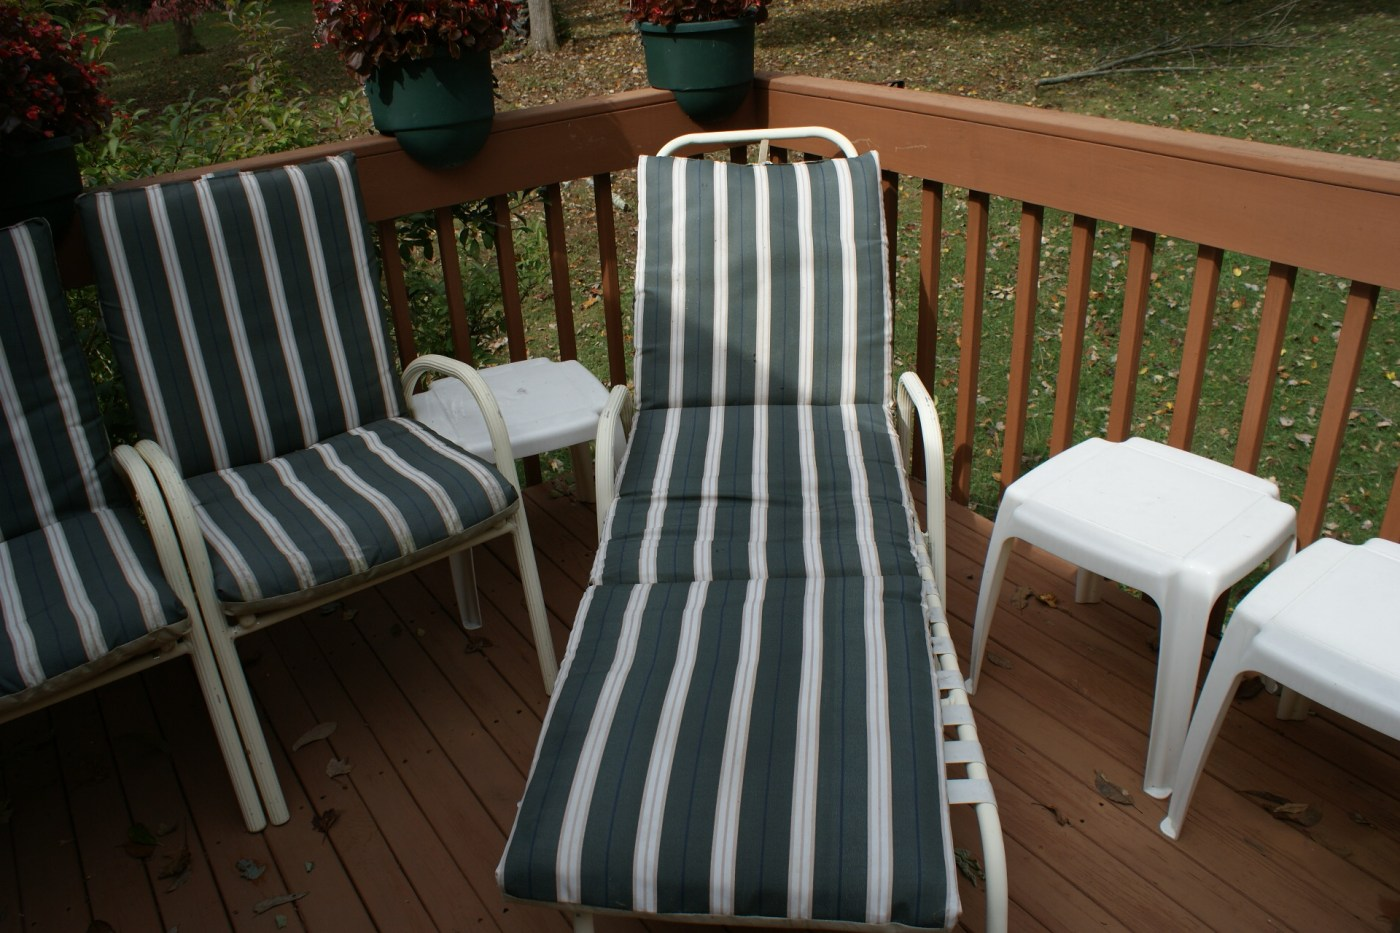 Finkel White Strap Patio Furniture Tables And